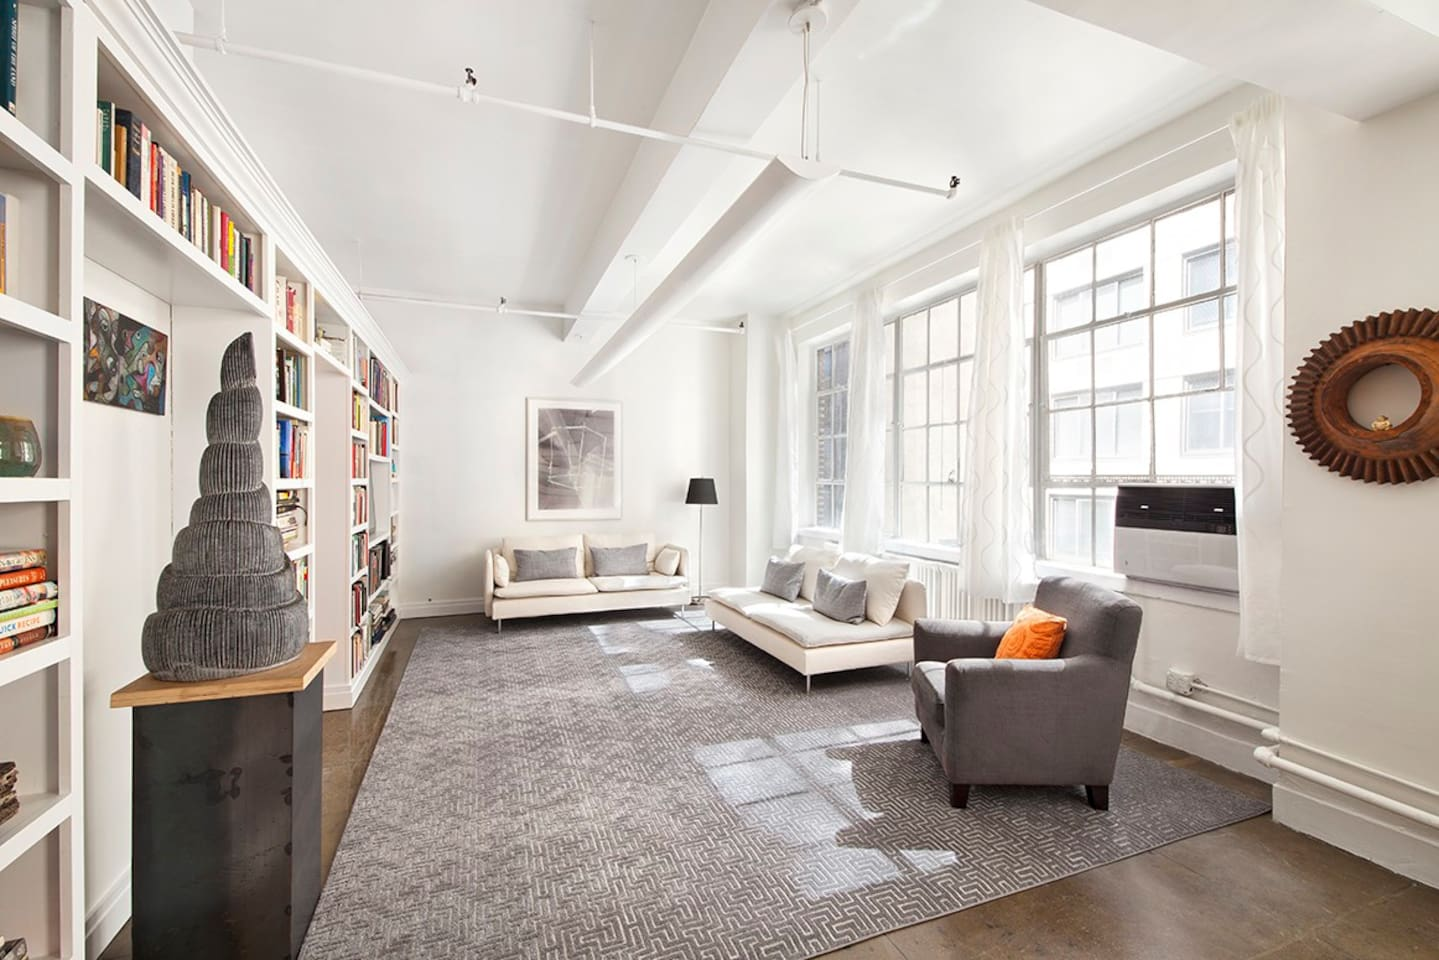 Fabulous Midtown Live/Work Loft - Lofts for Rent in New York, New ...